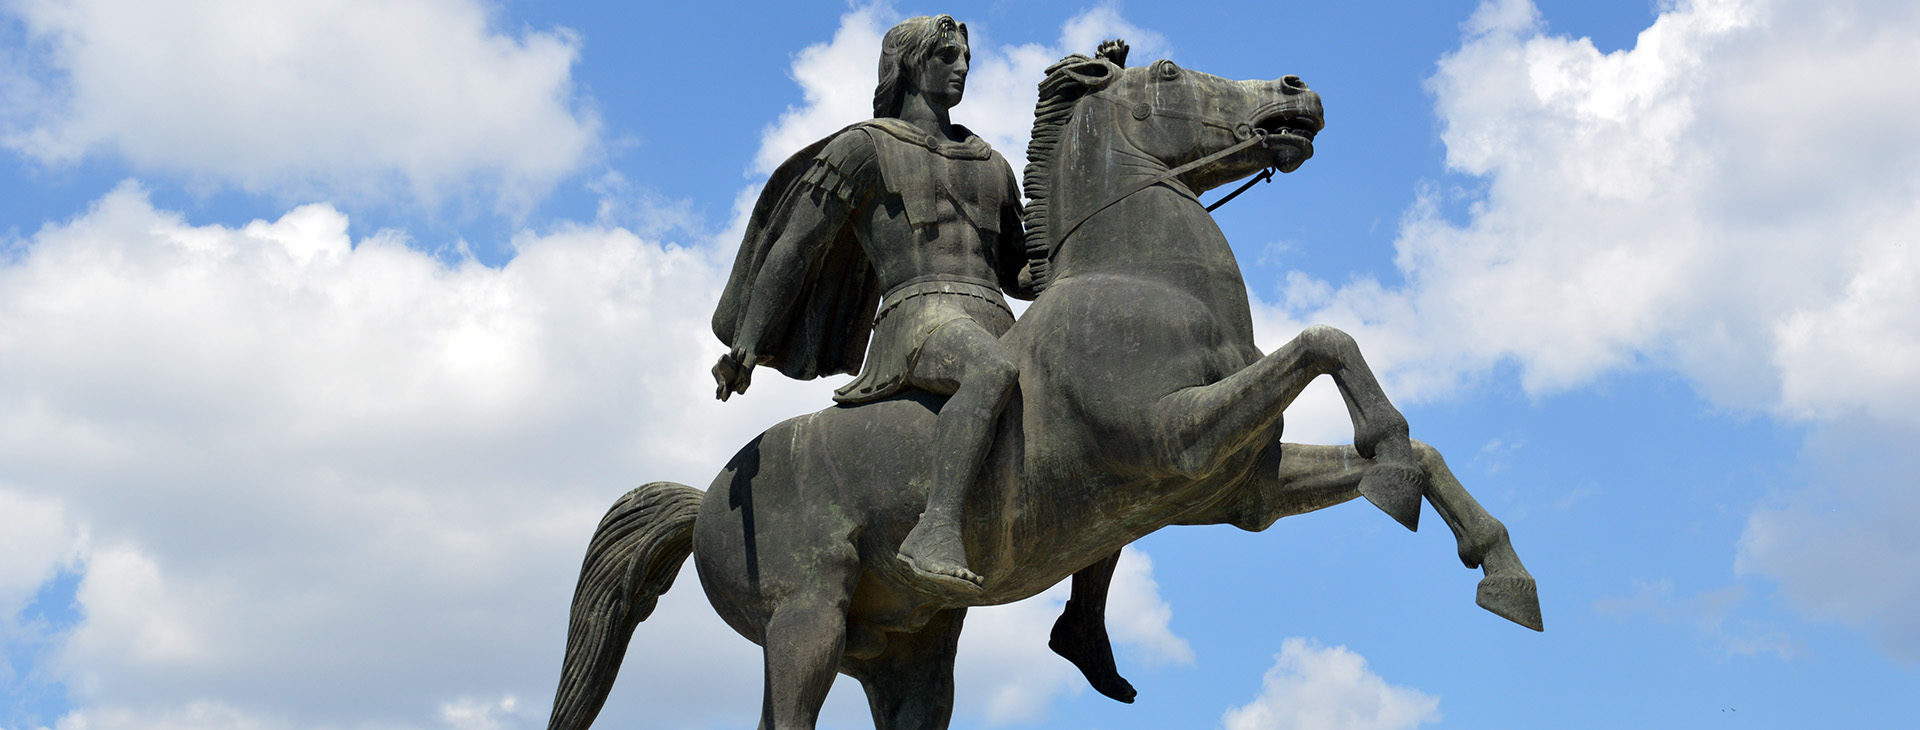 Alexander the Great statue, Thessaloniki City